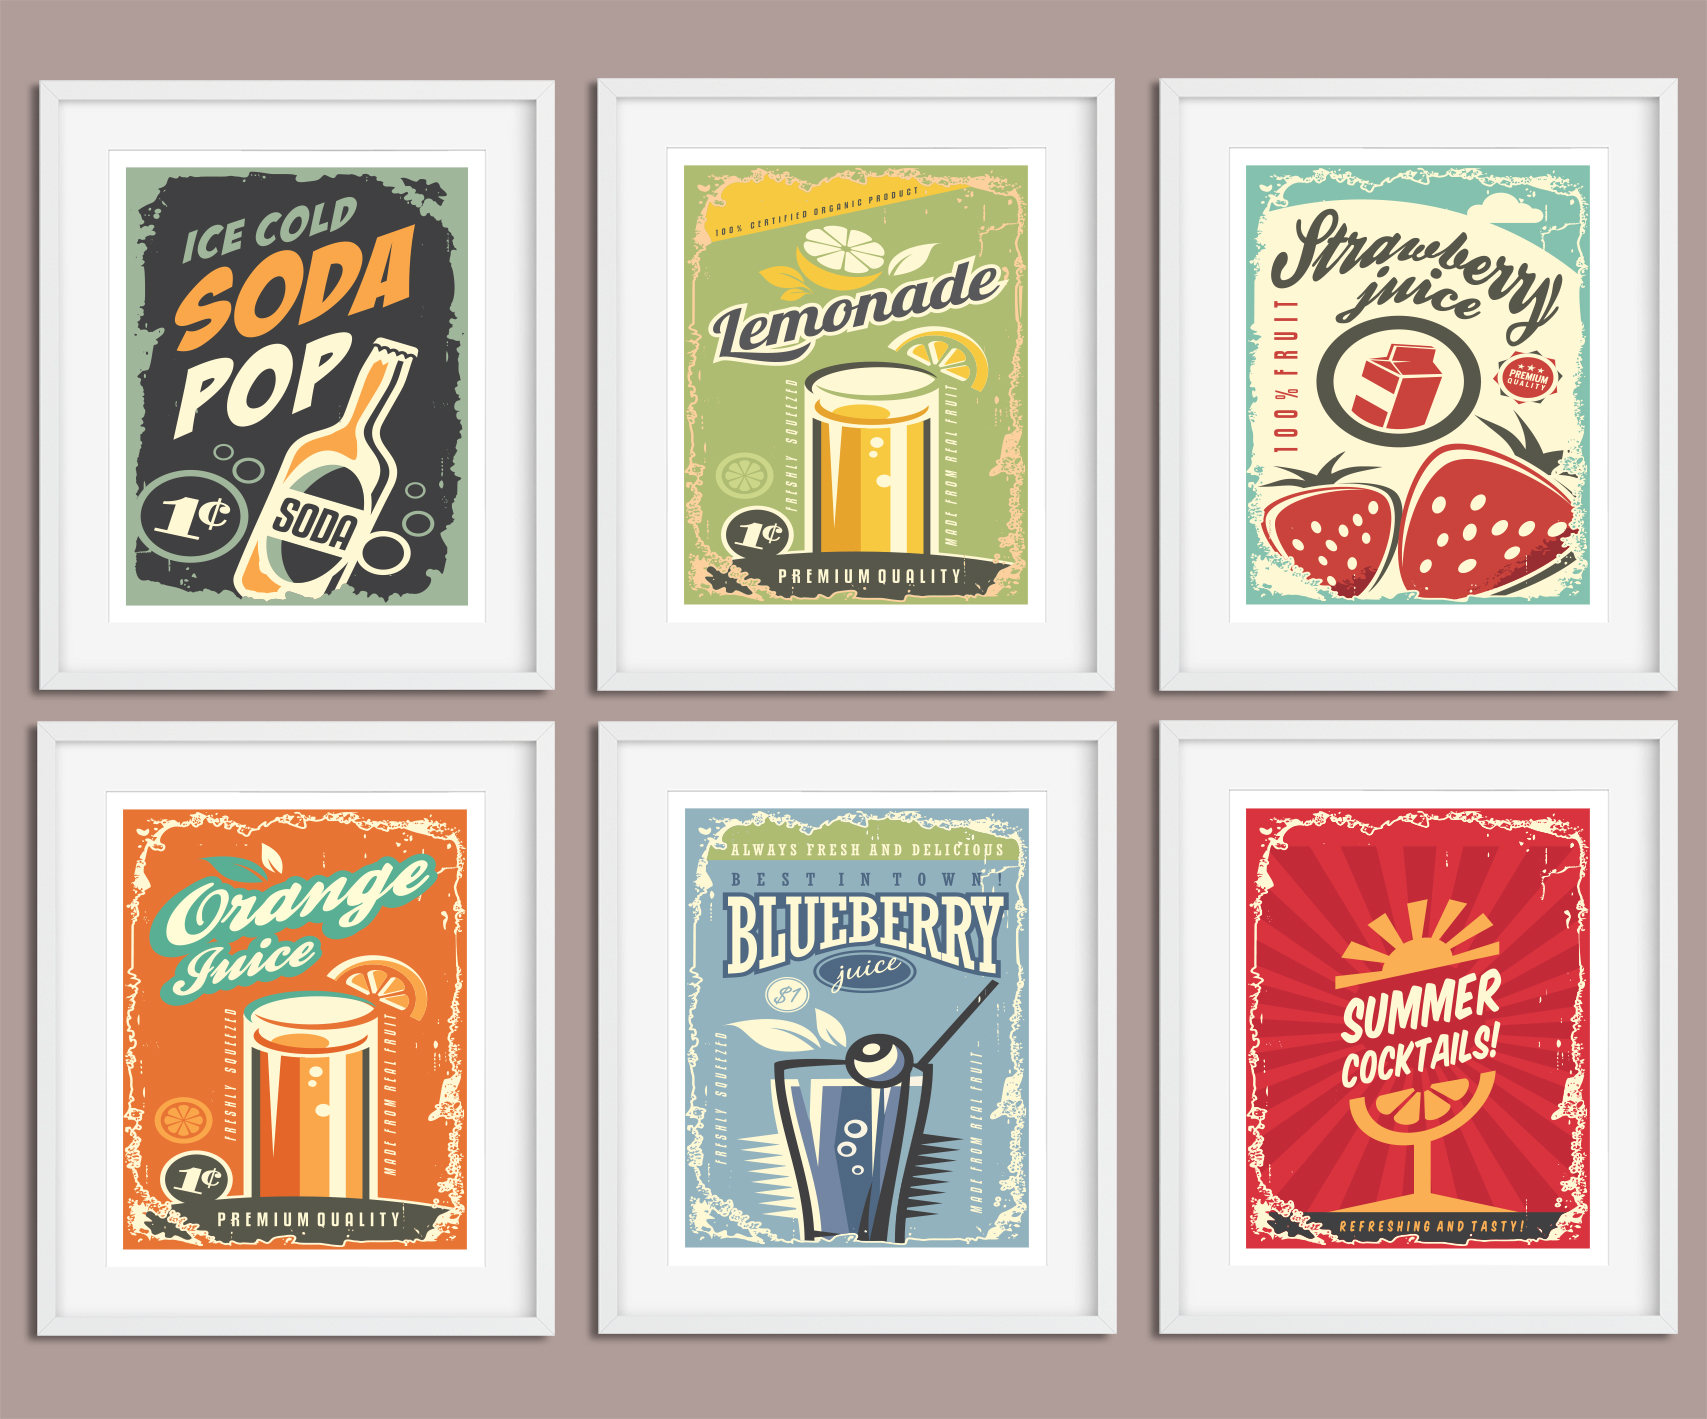 https://www.etsy.com/listing/464063272/kitchen-print-set-kitchen-prints-wall?ga_order=most_relevant&ga_search_type=all&ga_view_type=gallery&ga_search_query=retro%20kitchen&ref=sc_gallery-1-1&plkey=abd760885955b7cc748127fb0629ad348640656d:464063272